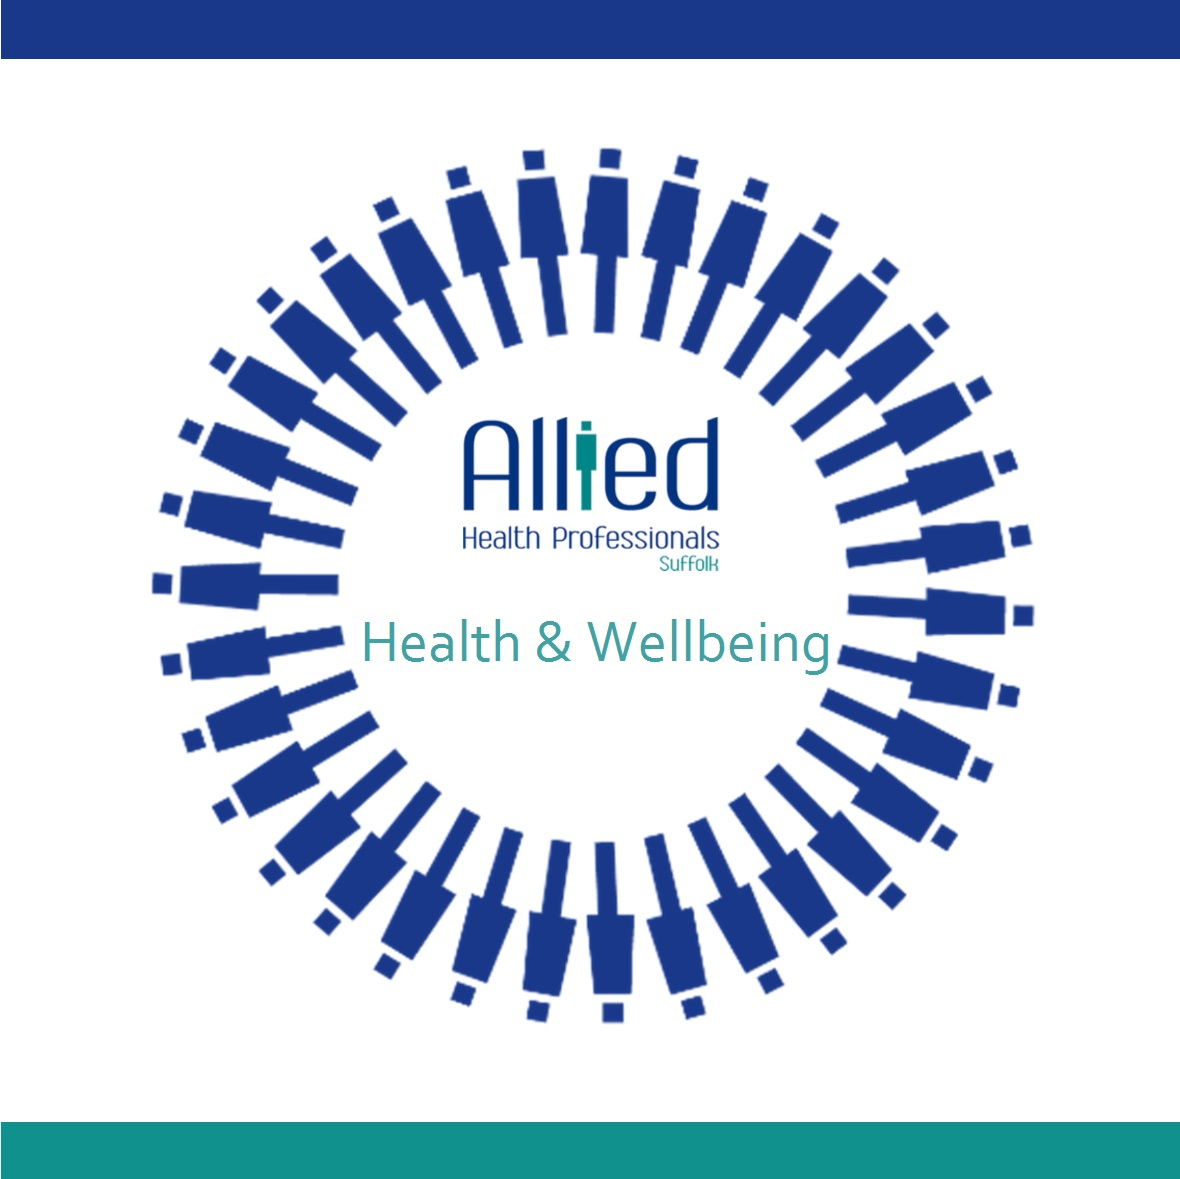 AHP Health and Wellbeing